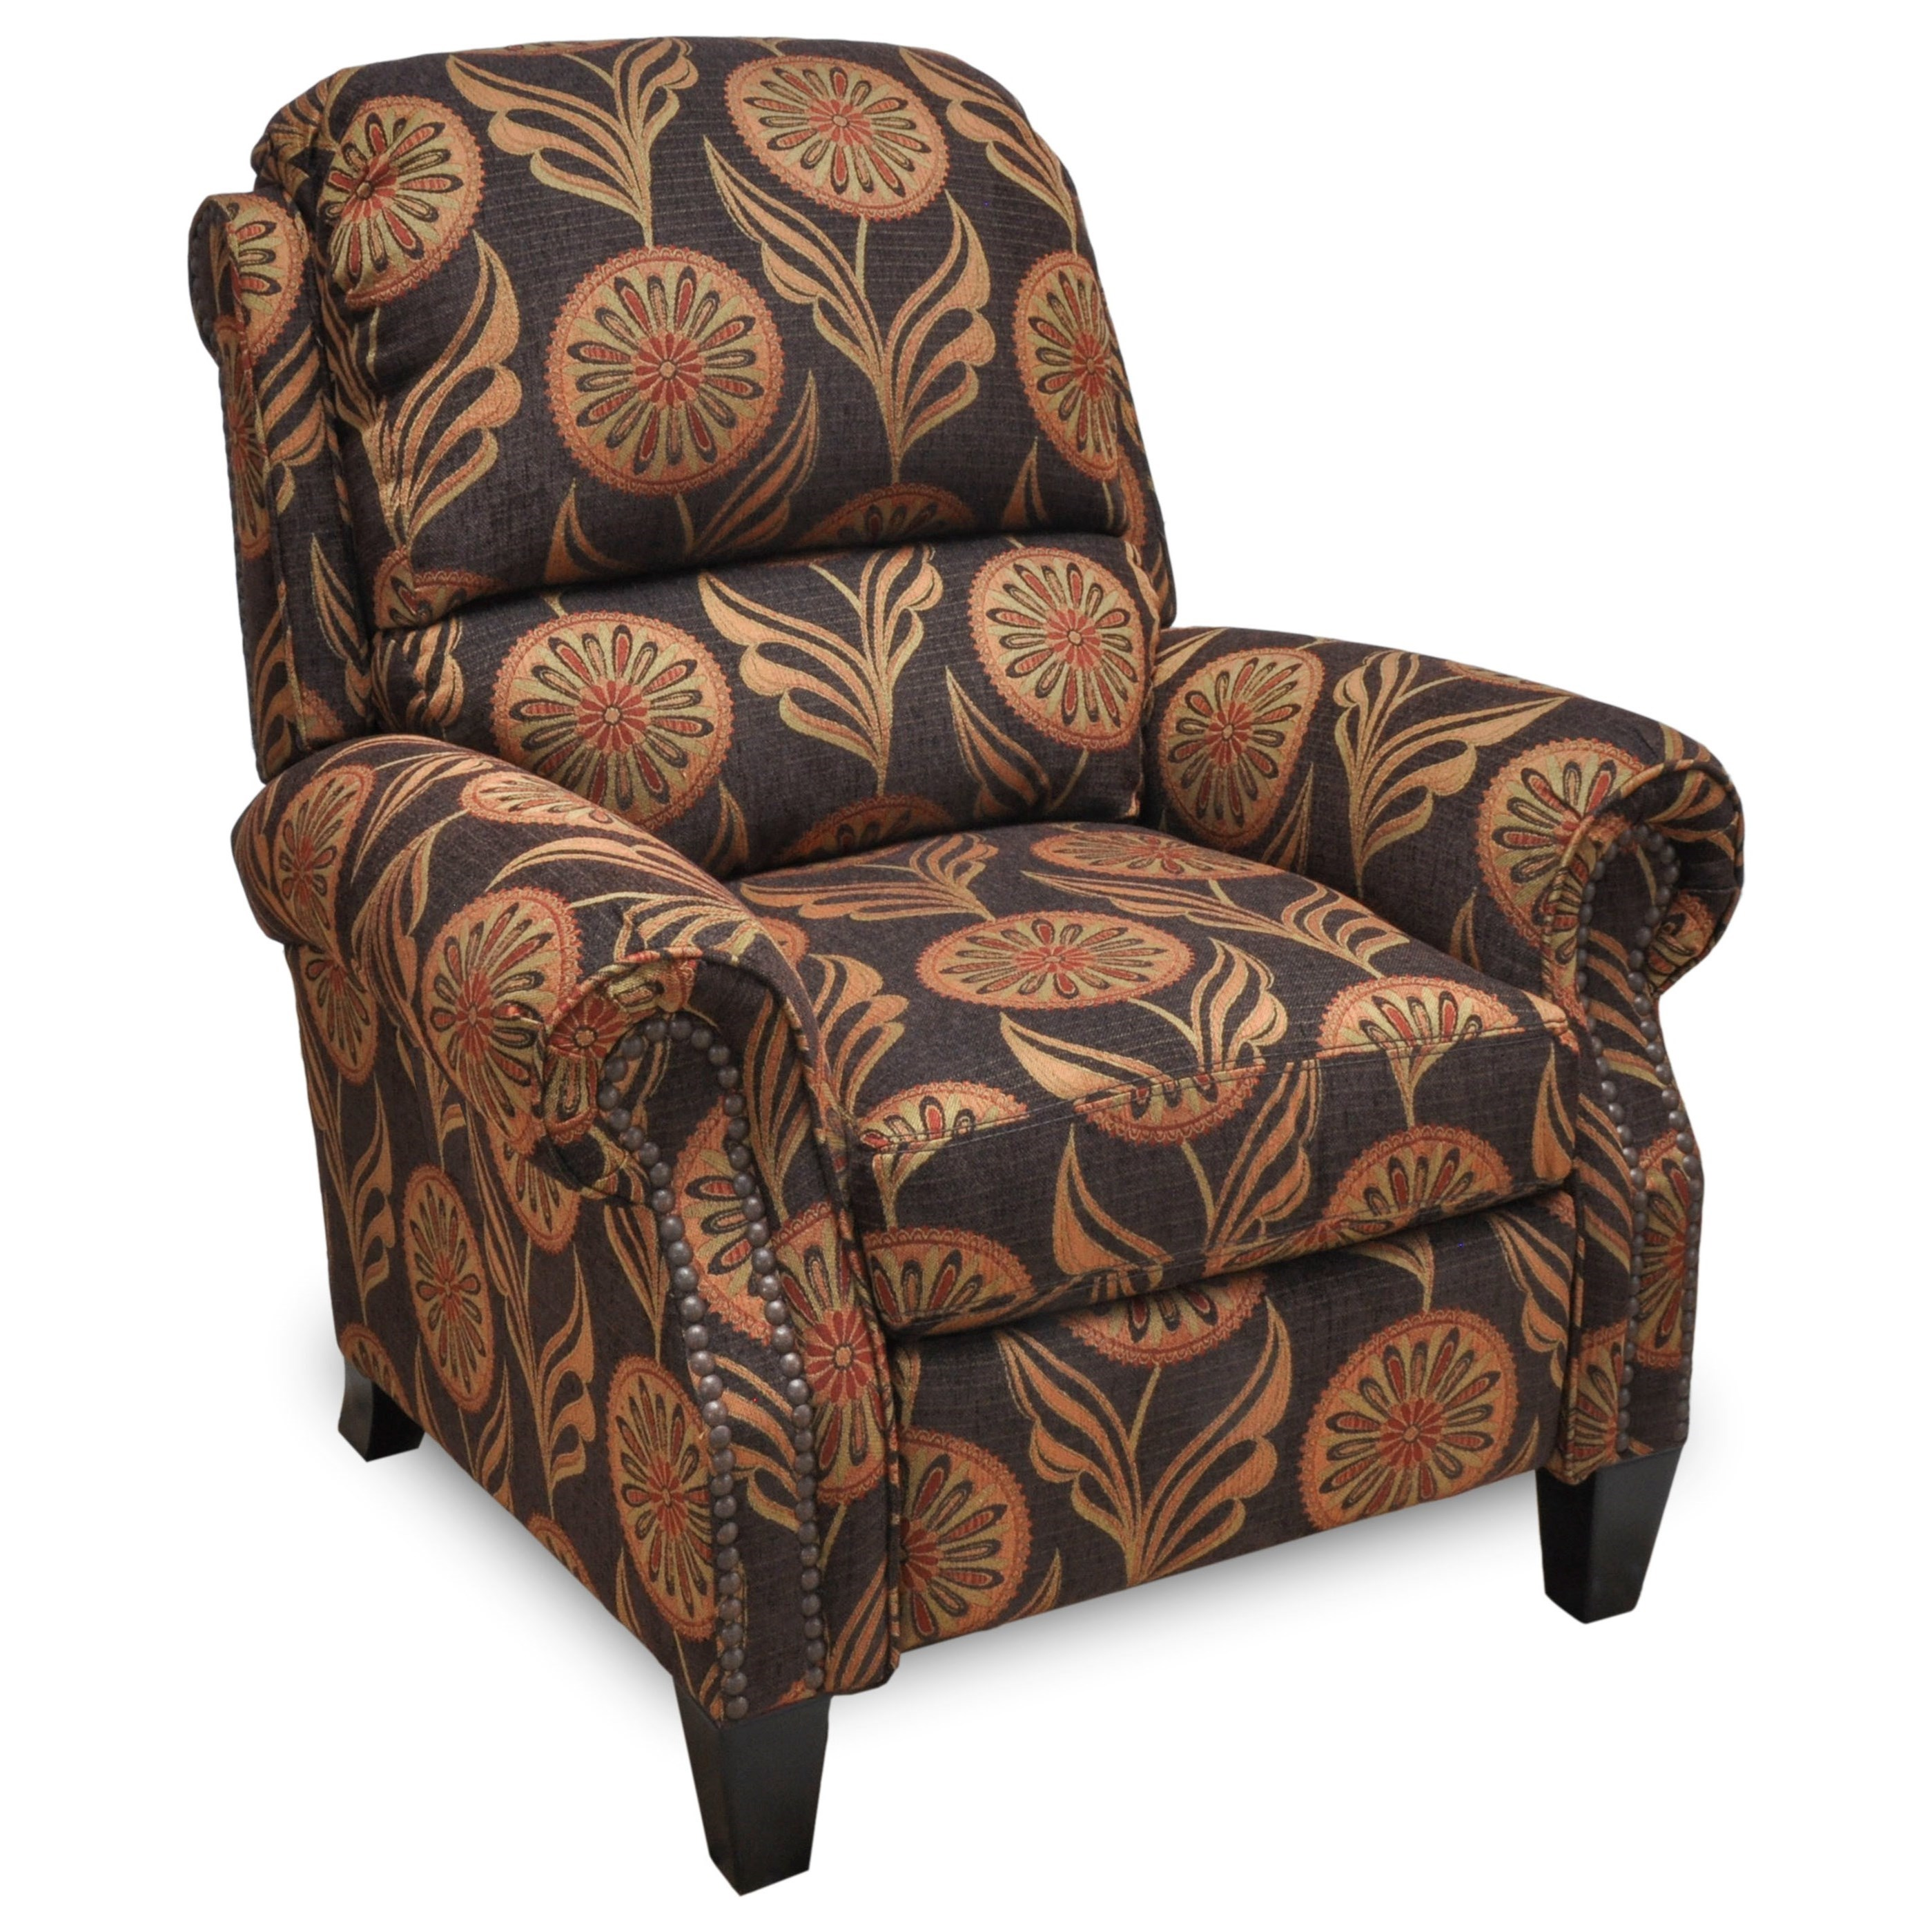 Ashley Furniture Beaumont Tx: Franklin Franklin Recliners Bishop Push Back Recliner